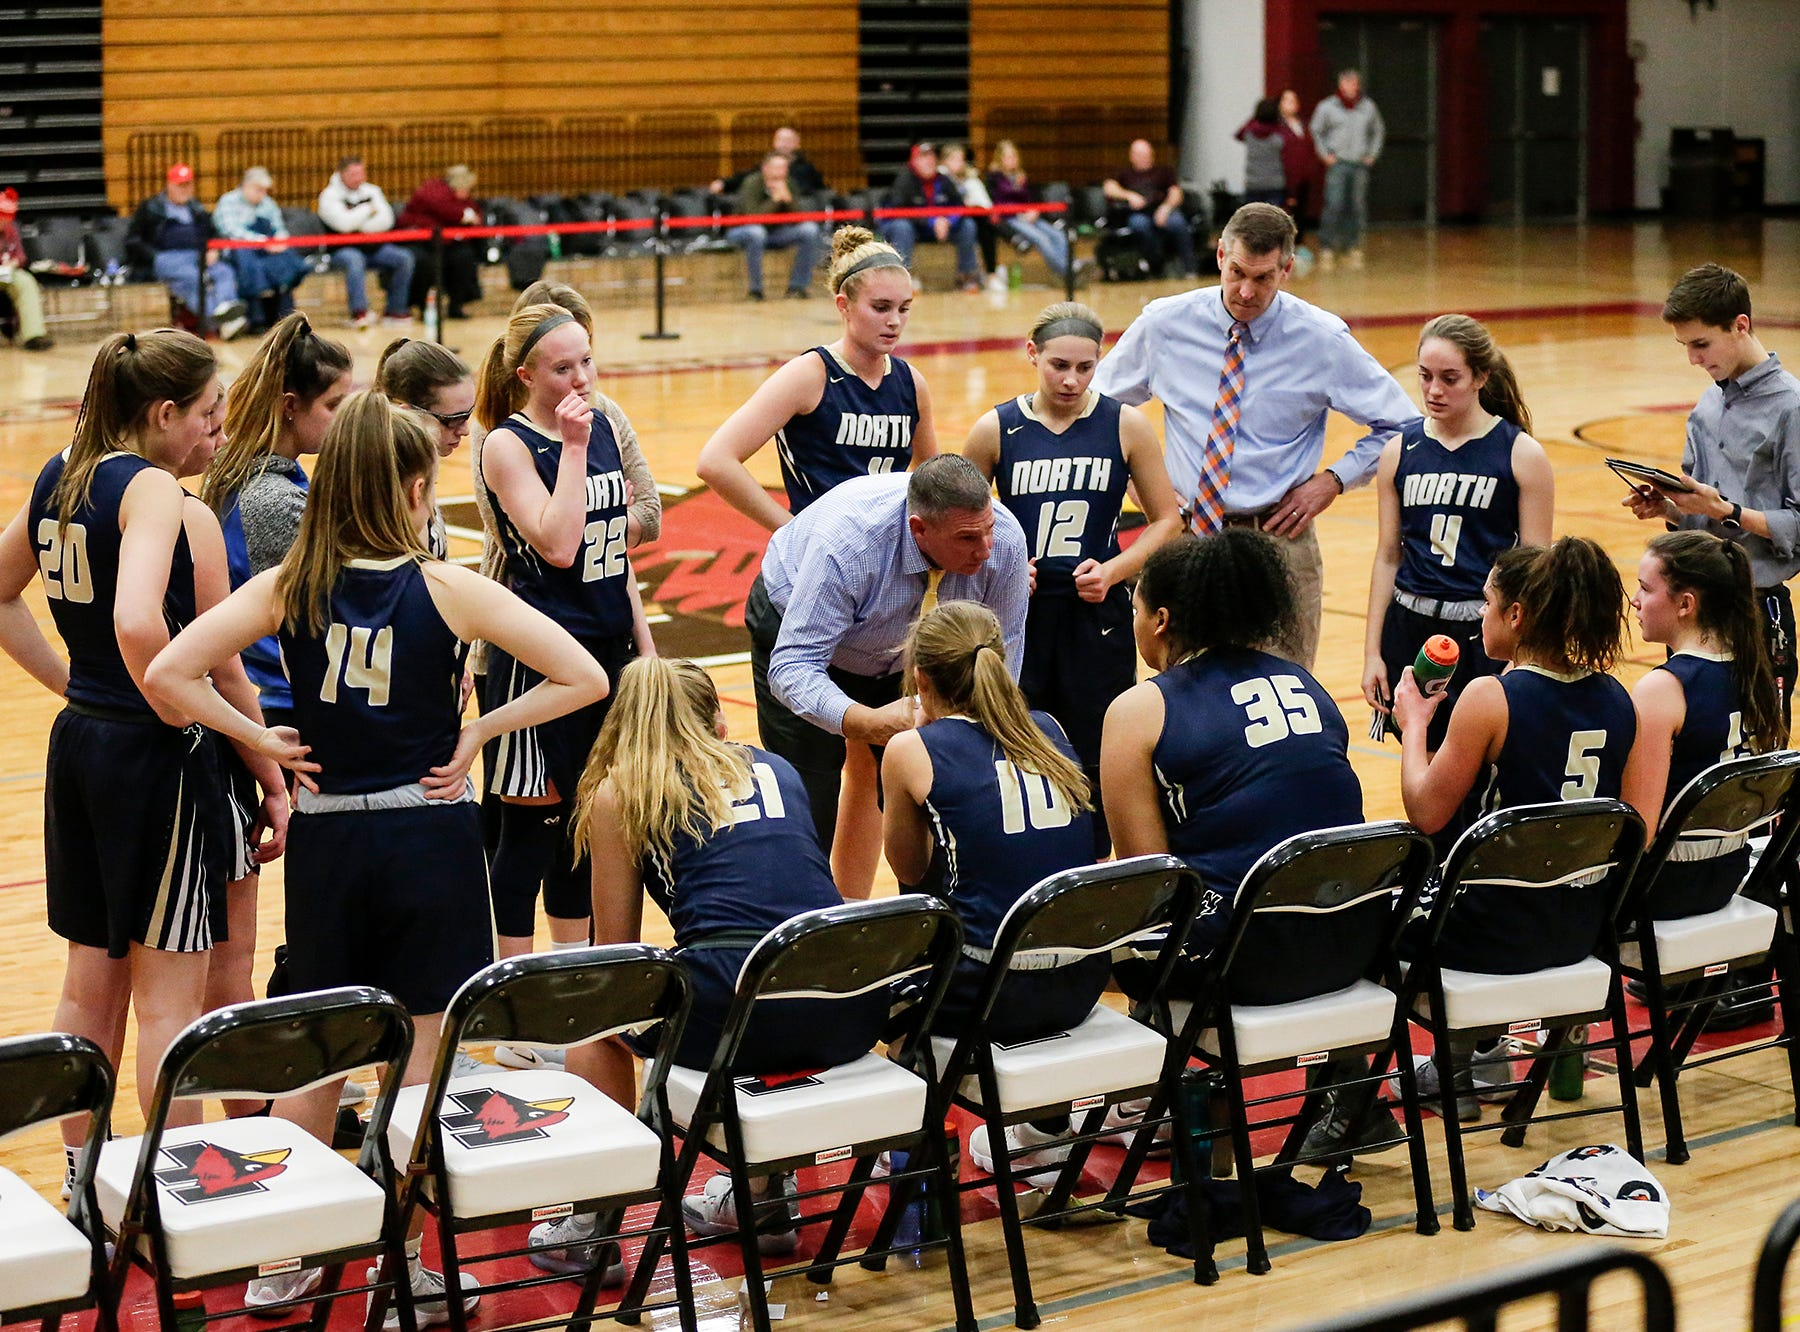 Appleton North High School girls basketball's coach Darren Prusinski talks with his team during a time out during their game against Fond du Lac High School Tuesday, December 4, 2018 in Fond du Lac, Wisconsin. Doug Raflik/USA TODAY NETWORK-Wisconsin